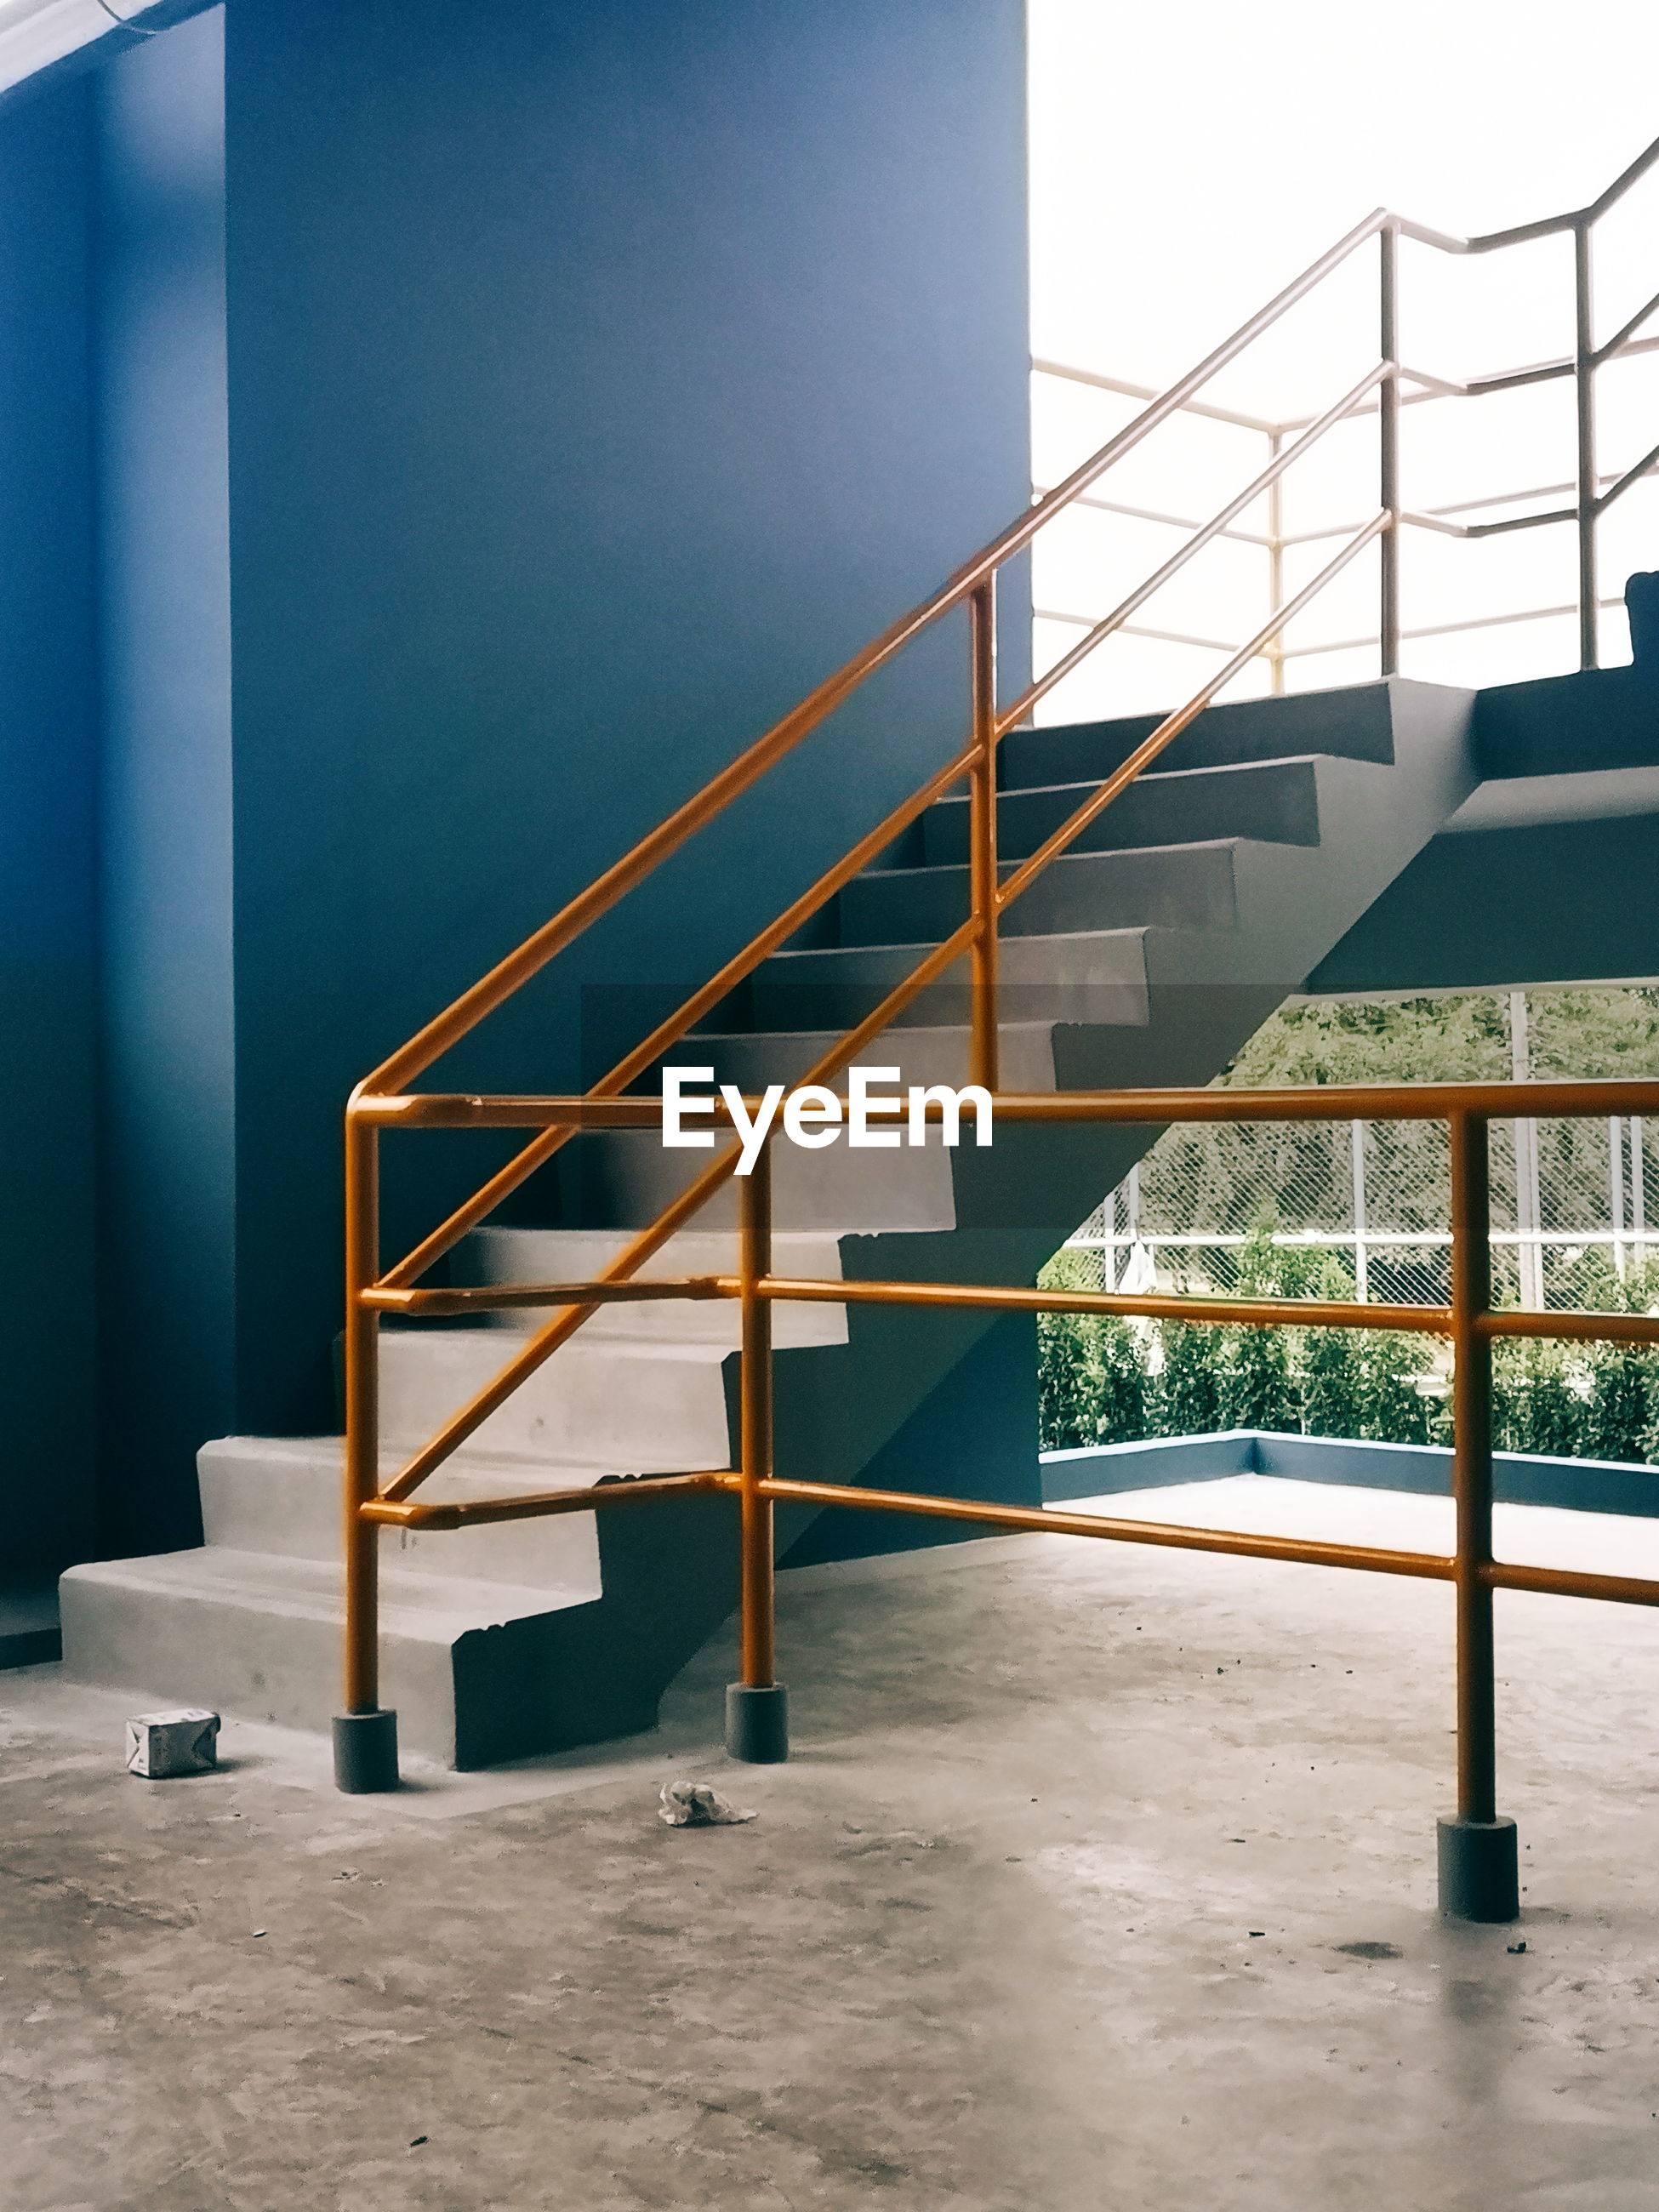 Empty staircase in building against clear sky